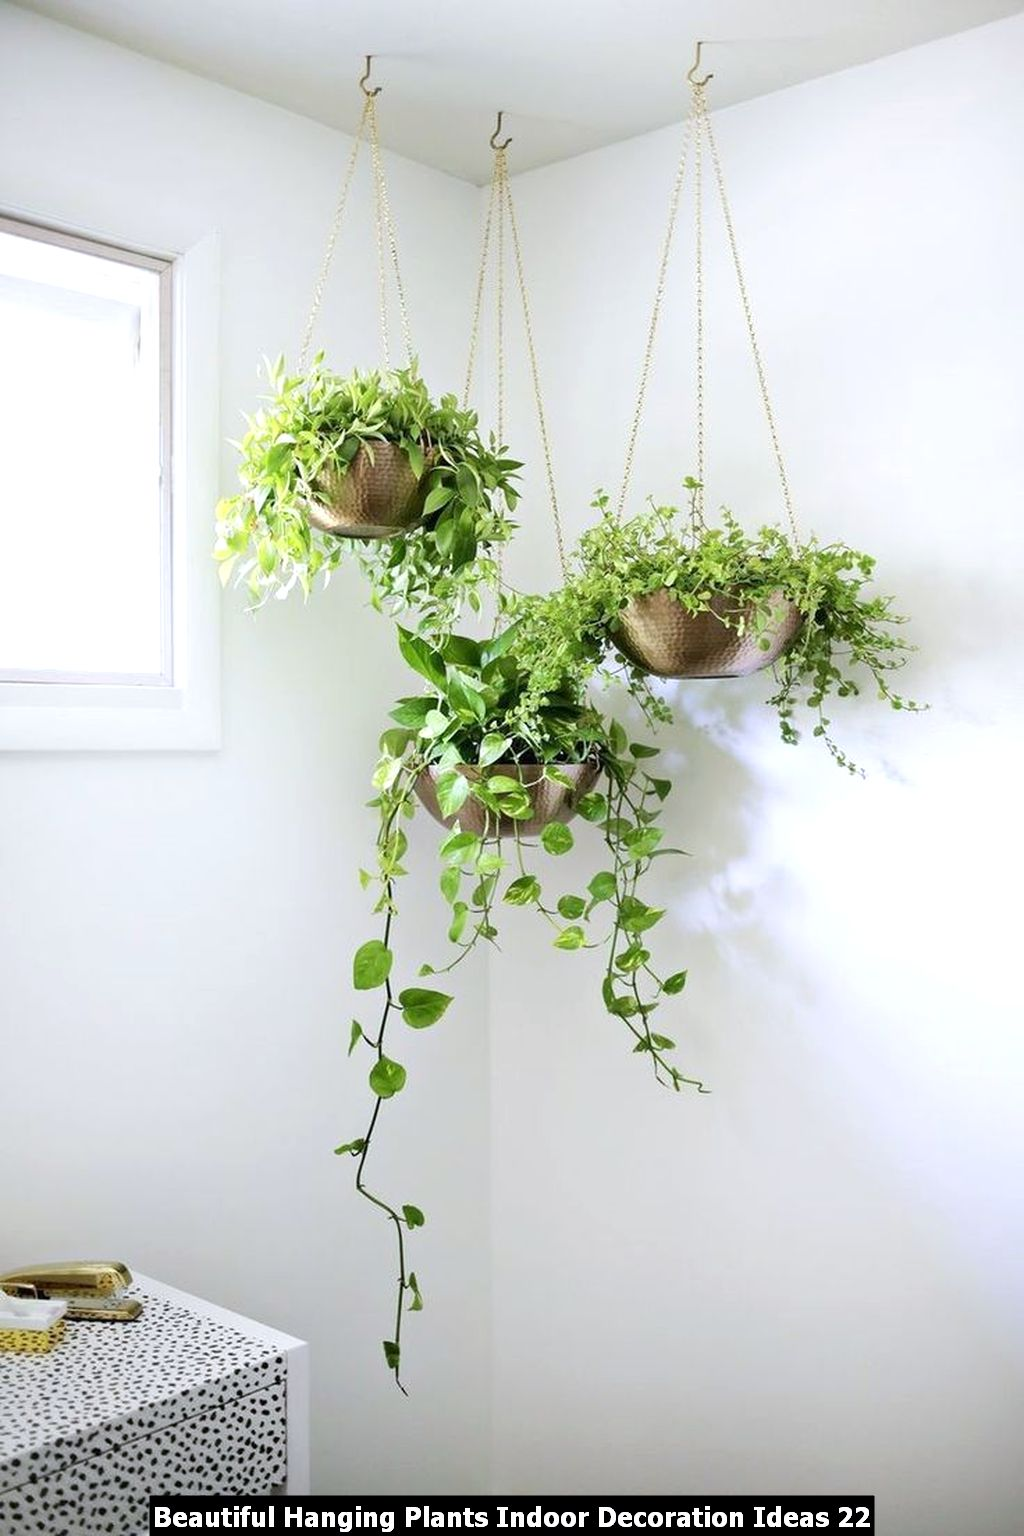 Beautiful Hanging Plants Indoor Decoration Ideas 22